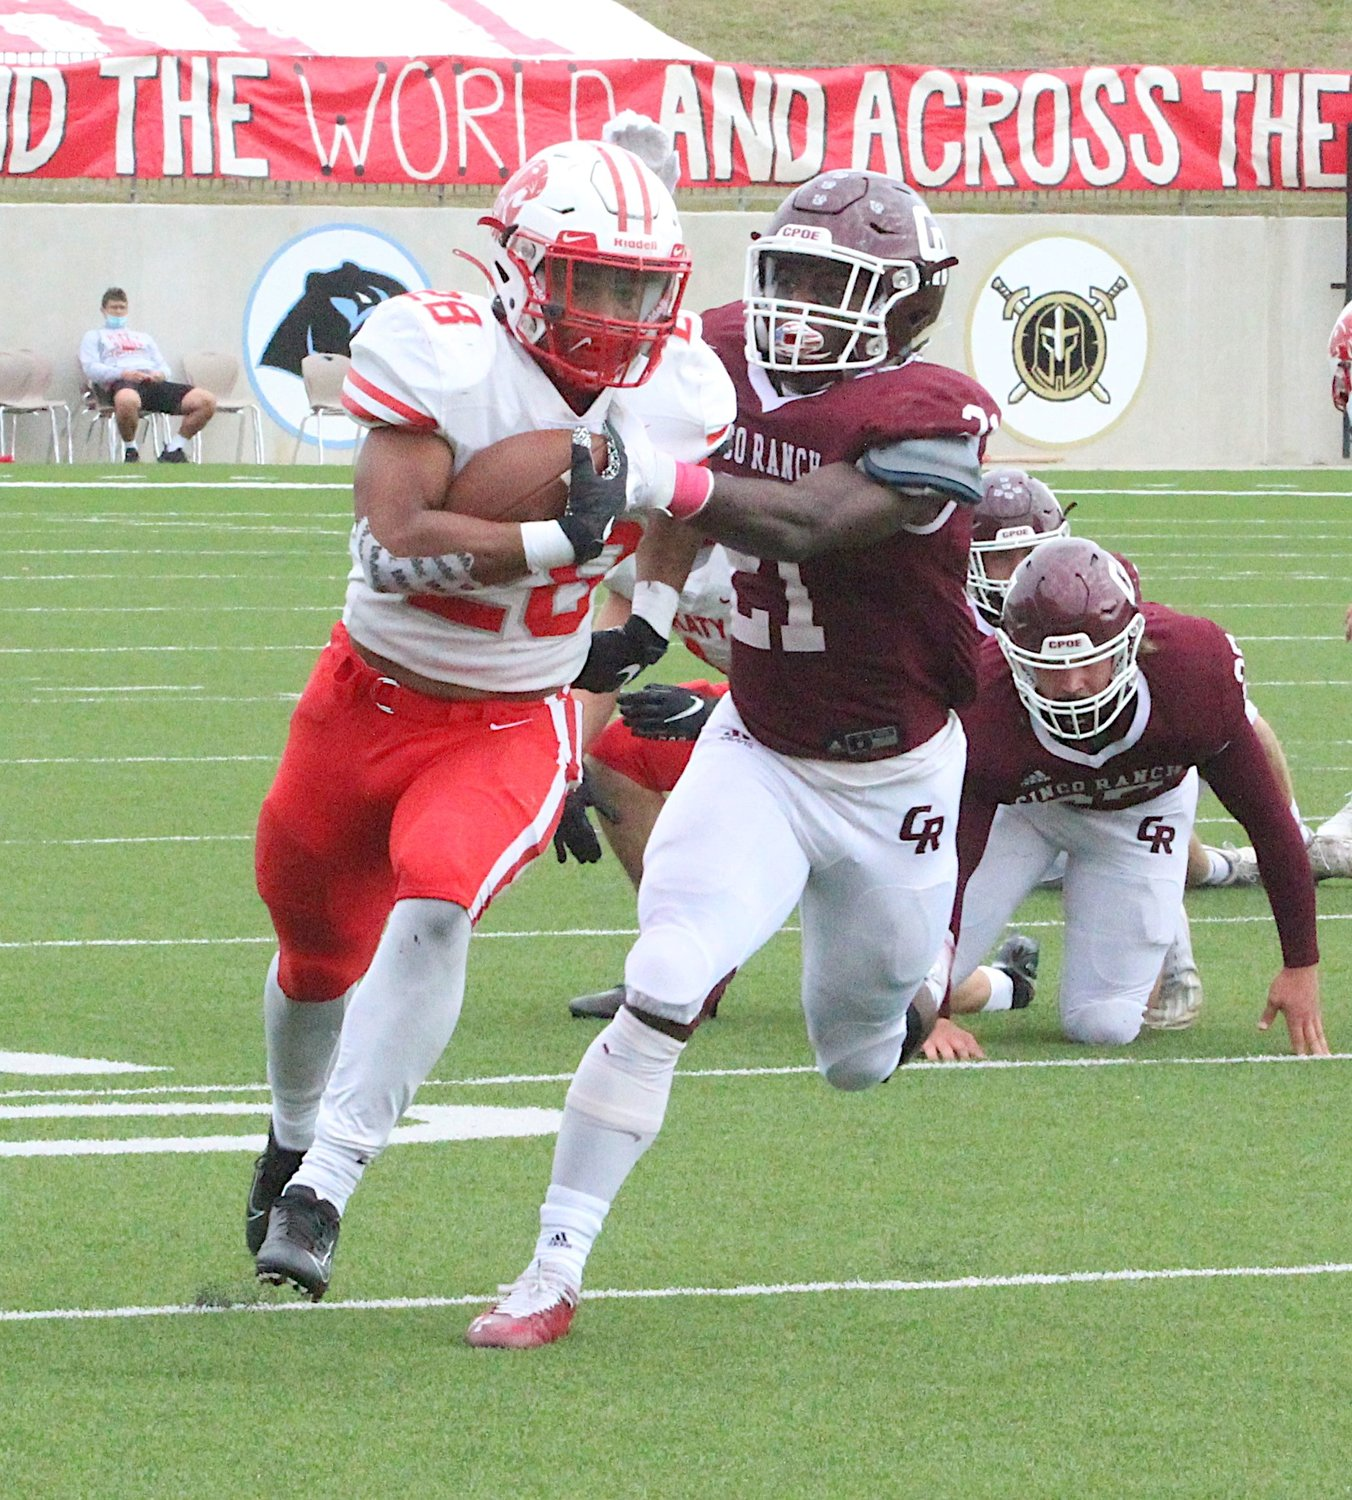 Katy High senior running back Jalen Davis had 87 yards and two touchdowns during the Tigers' win over Cinco Ranch on Oct. 24 at Legacy Stadium.